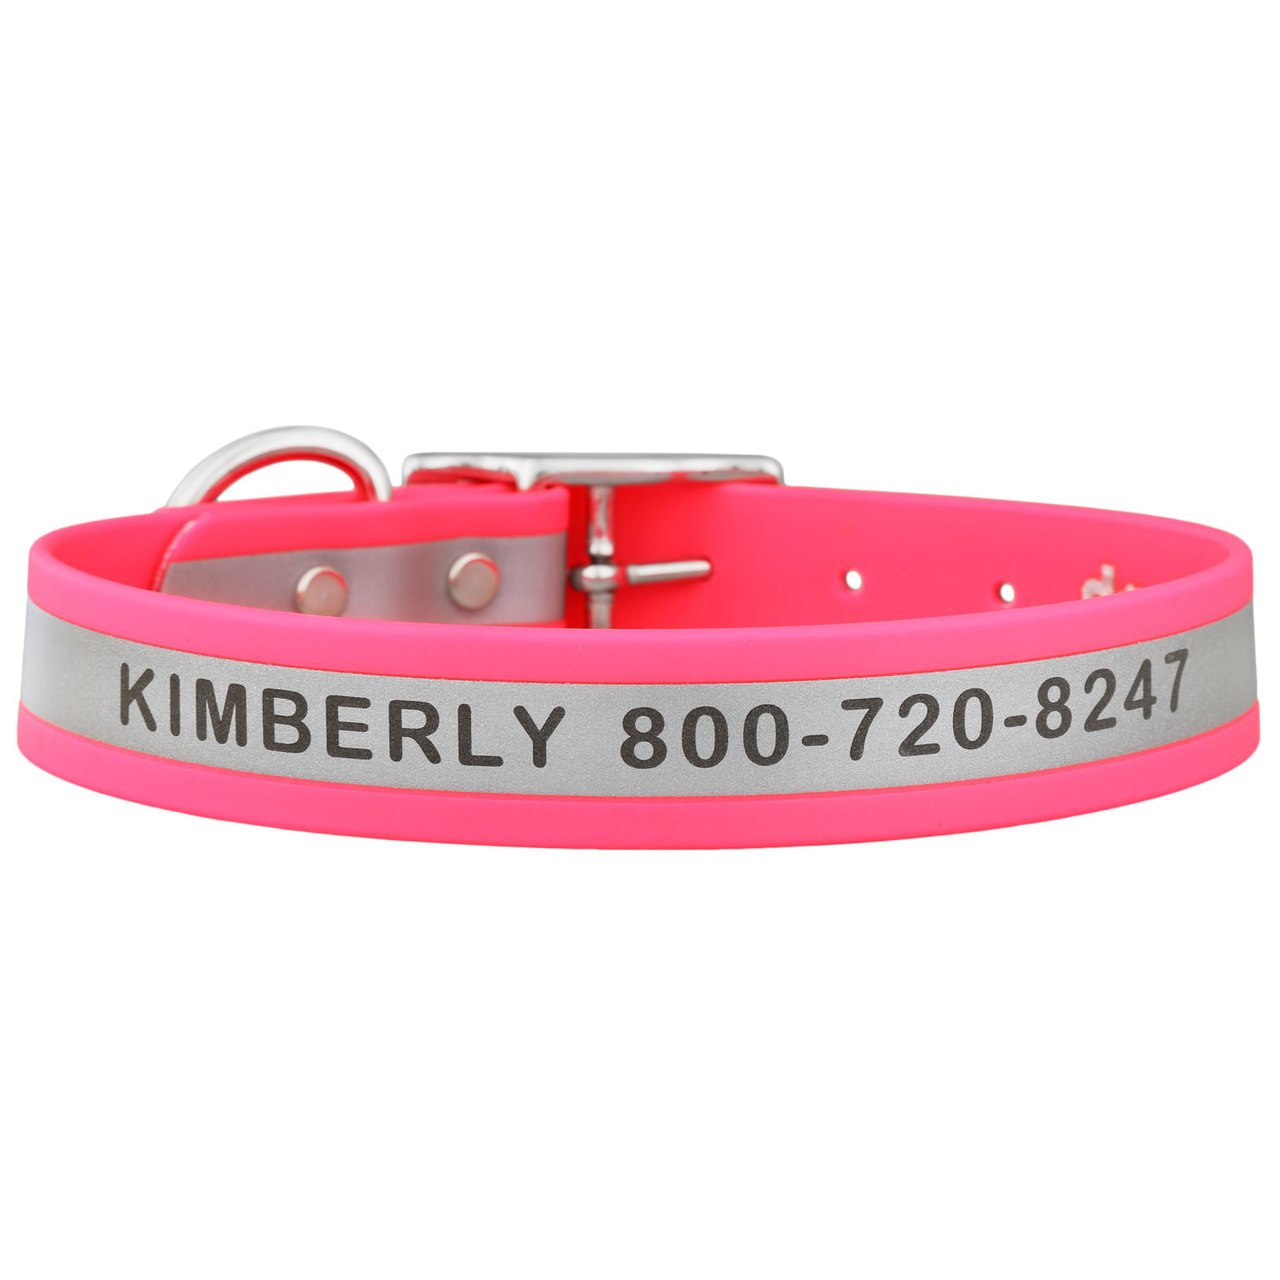 Engraved Reflective Waterproof Soft Grip Dog Collar Pink